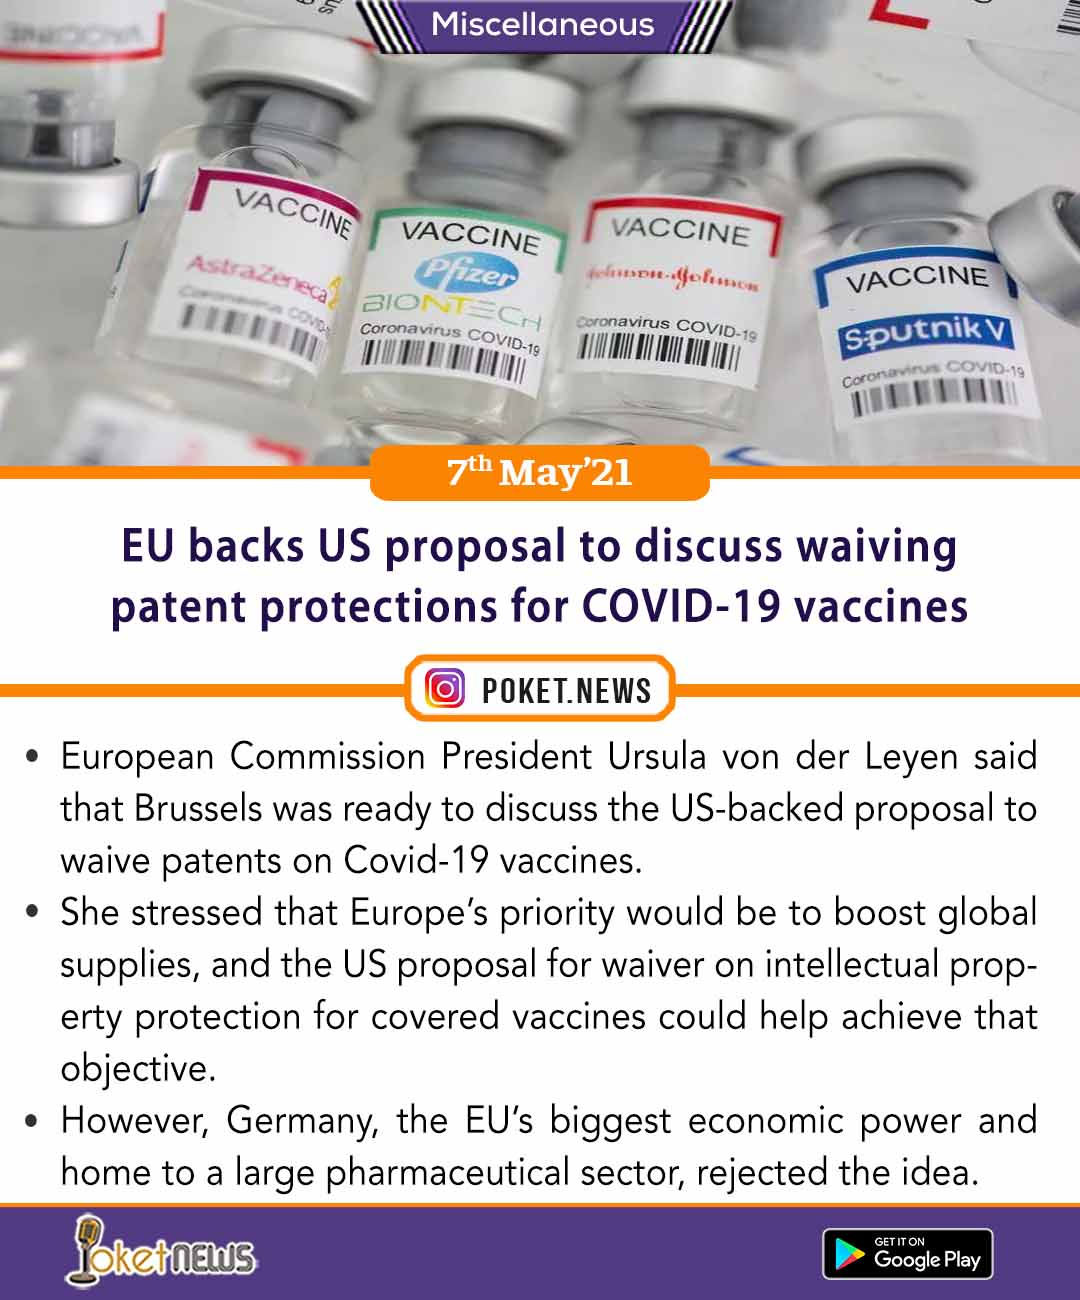 EU backs US proposal to discuss waiving patent protections for COVID-19 vaccines